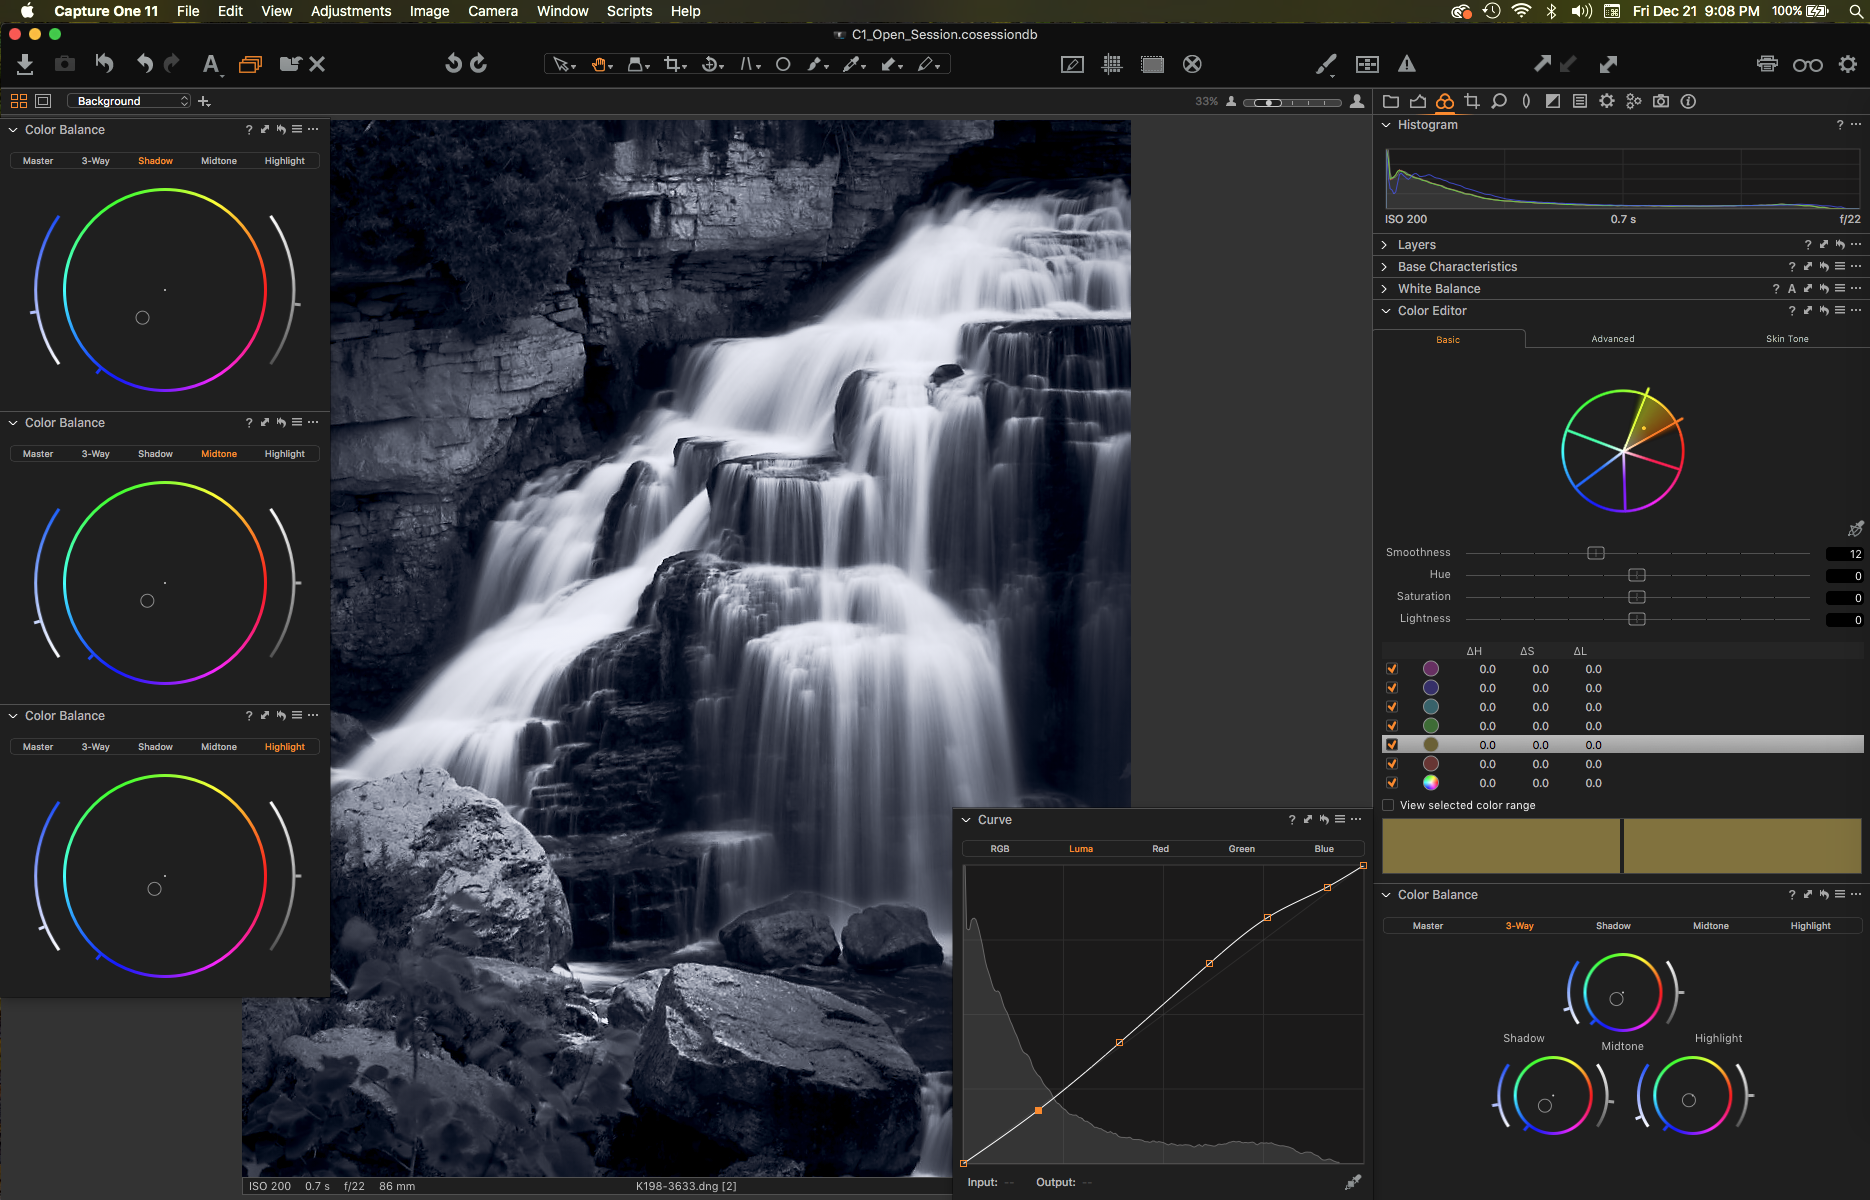 The editing controls in Capture One are second to none. Create custom workspaces for various workflows.